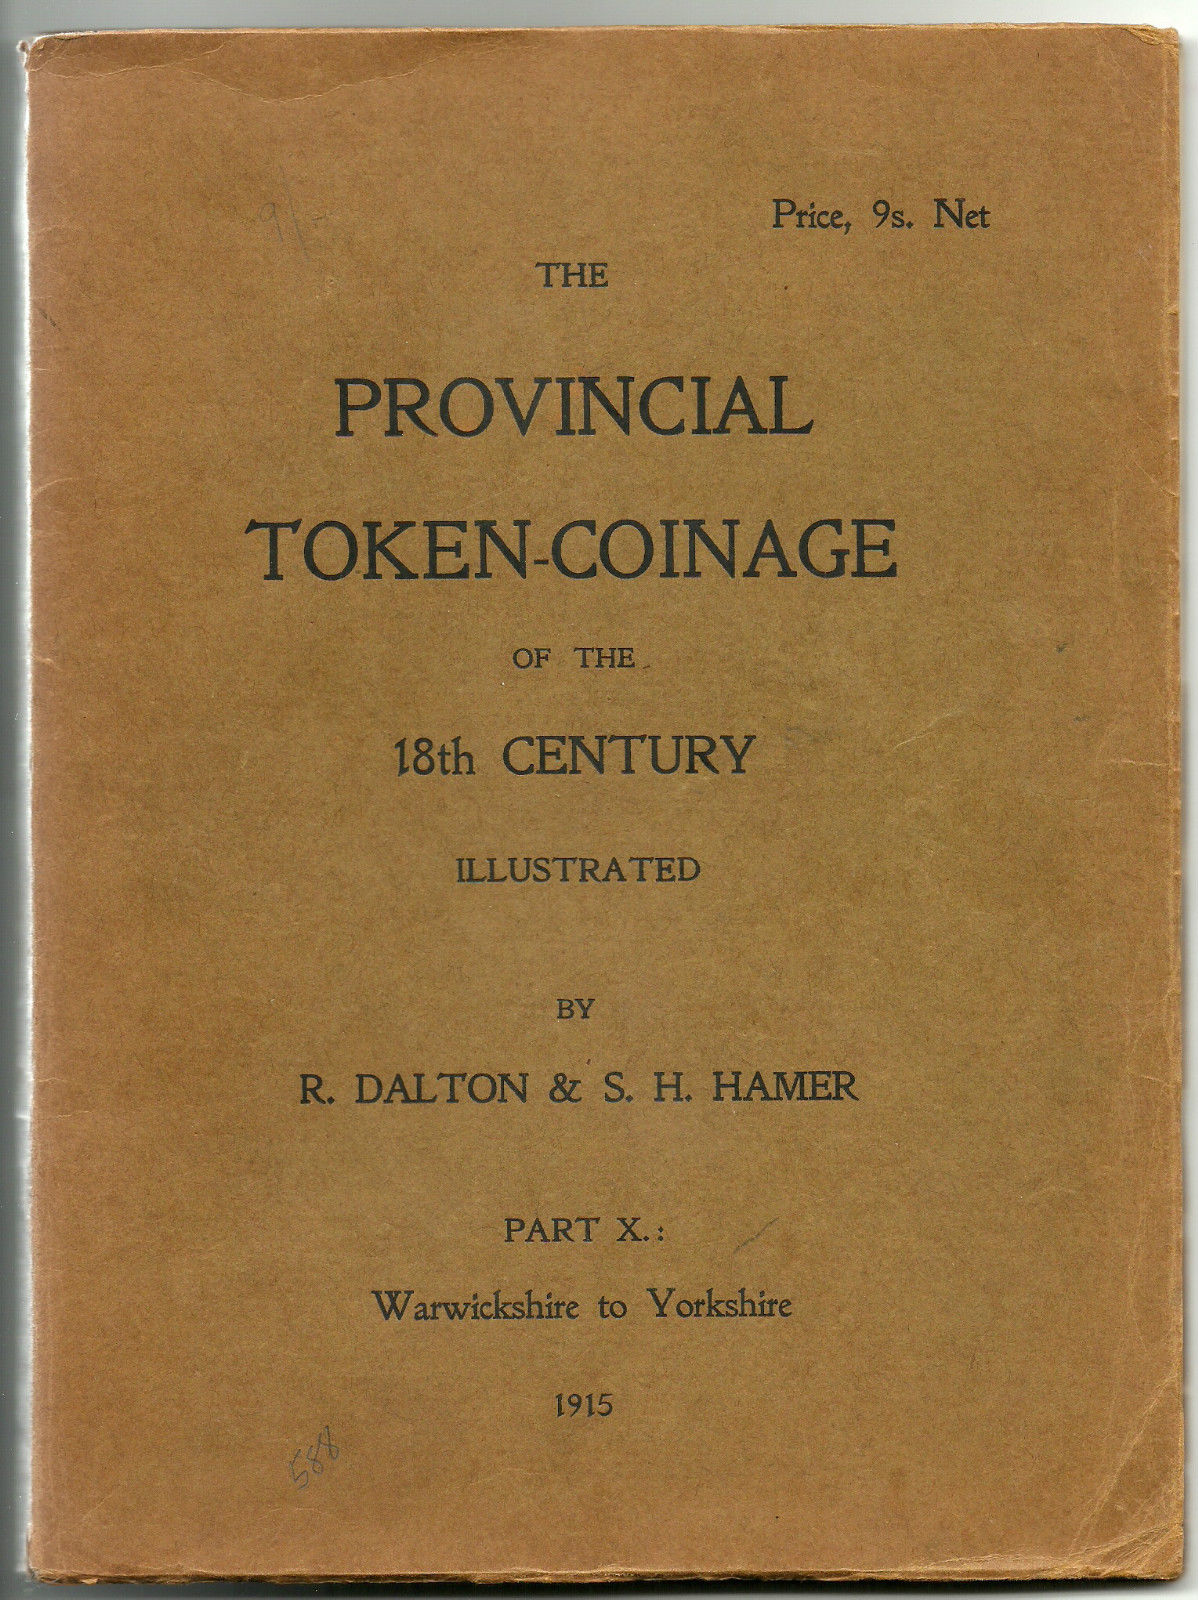 THE PROVINCIAL TOKEN-COINAGE OF THE 18TH CENTURY - First Edition - Part X - Dalton & Hamer